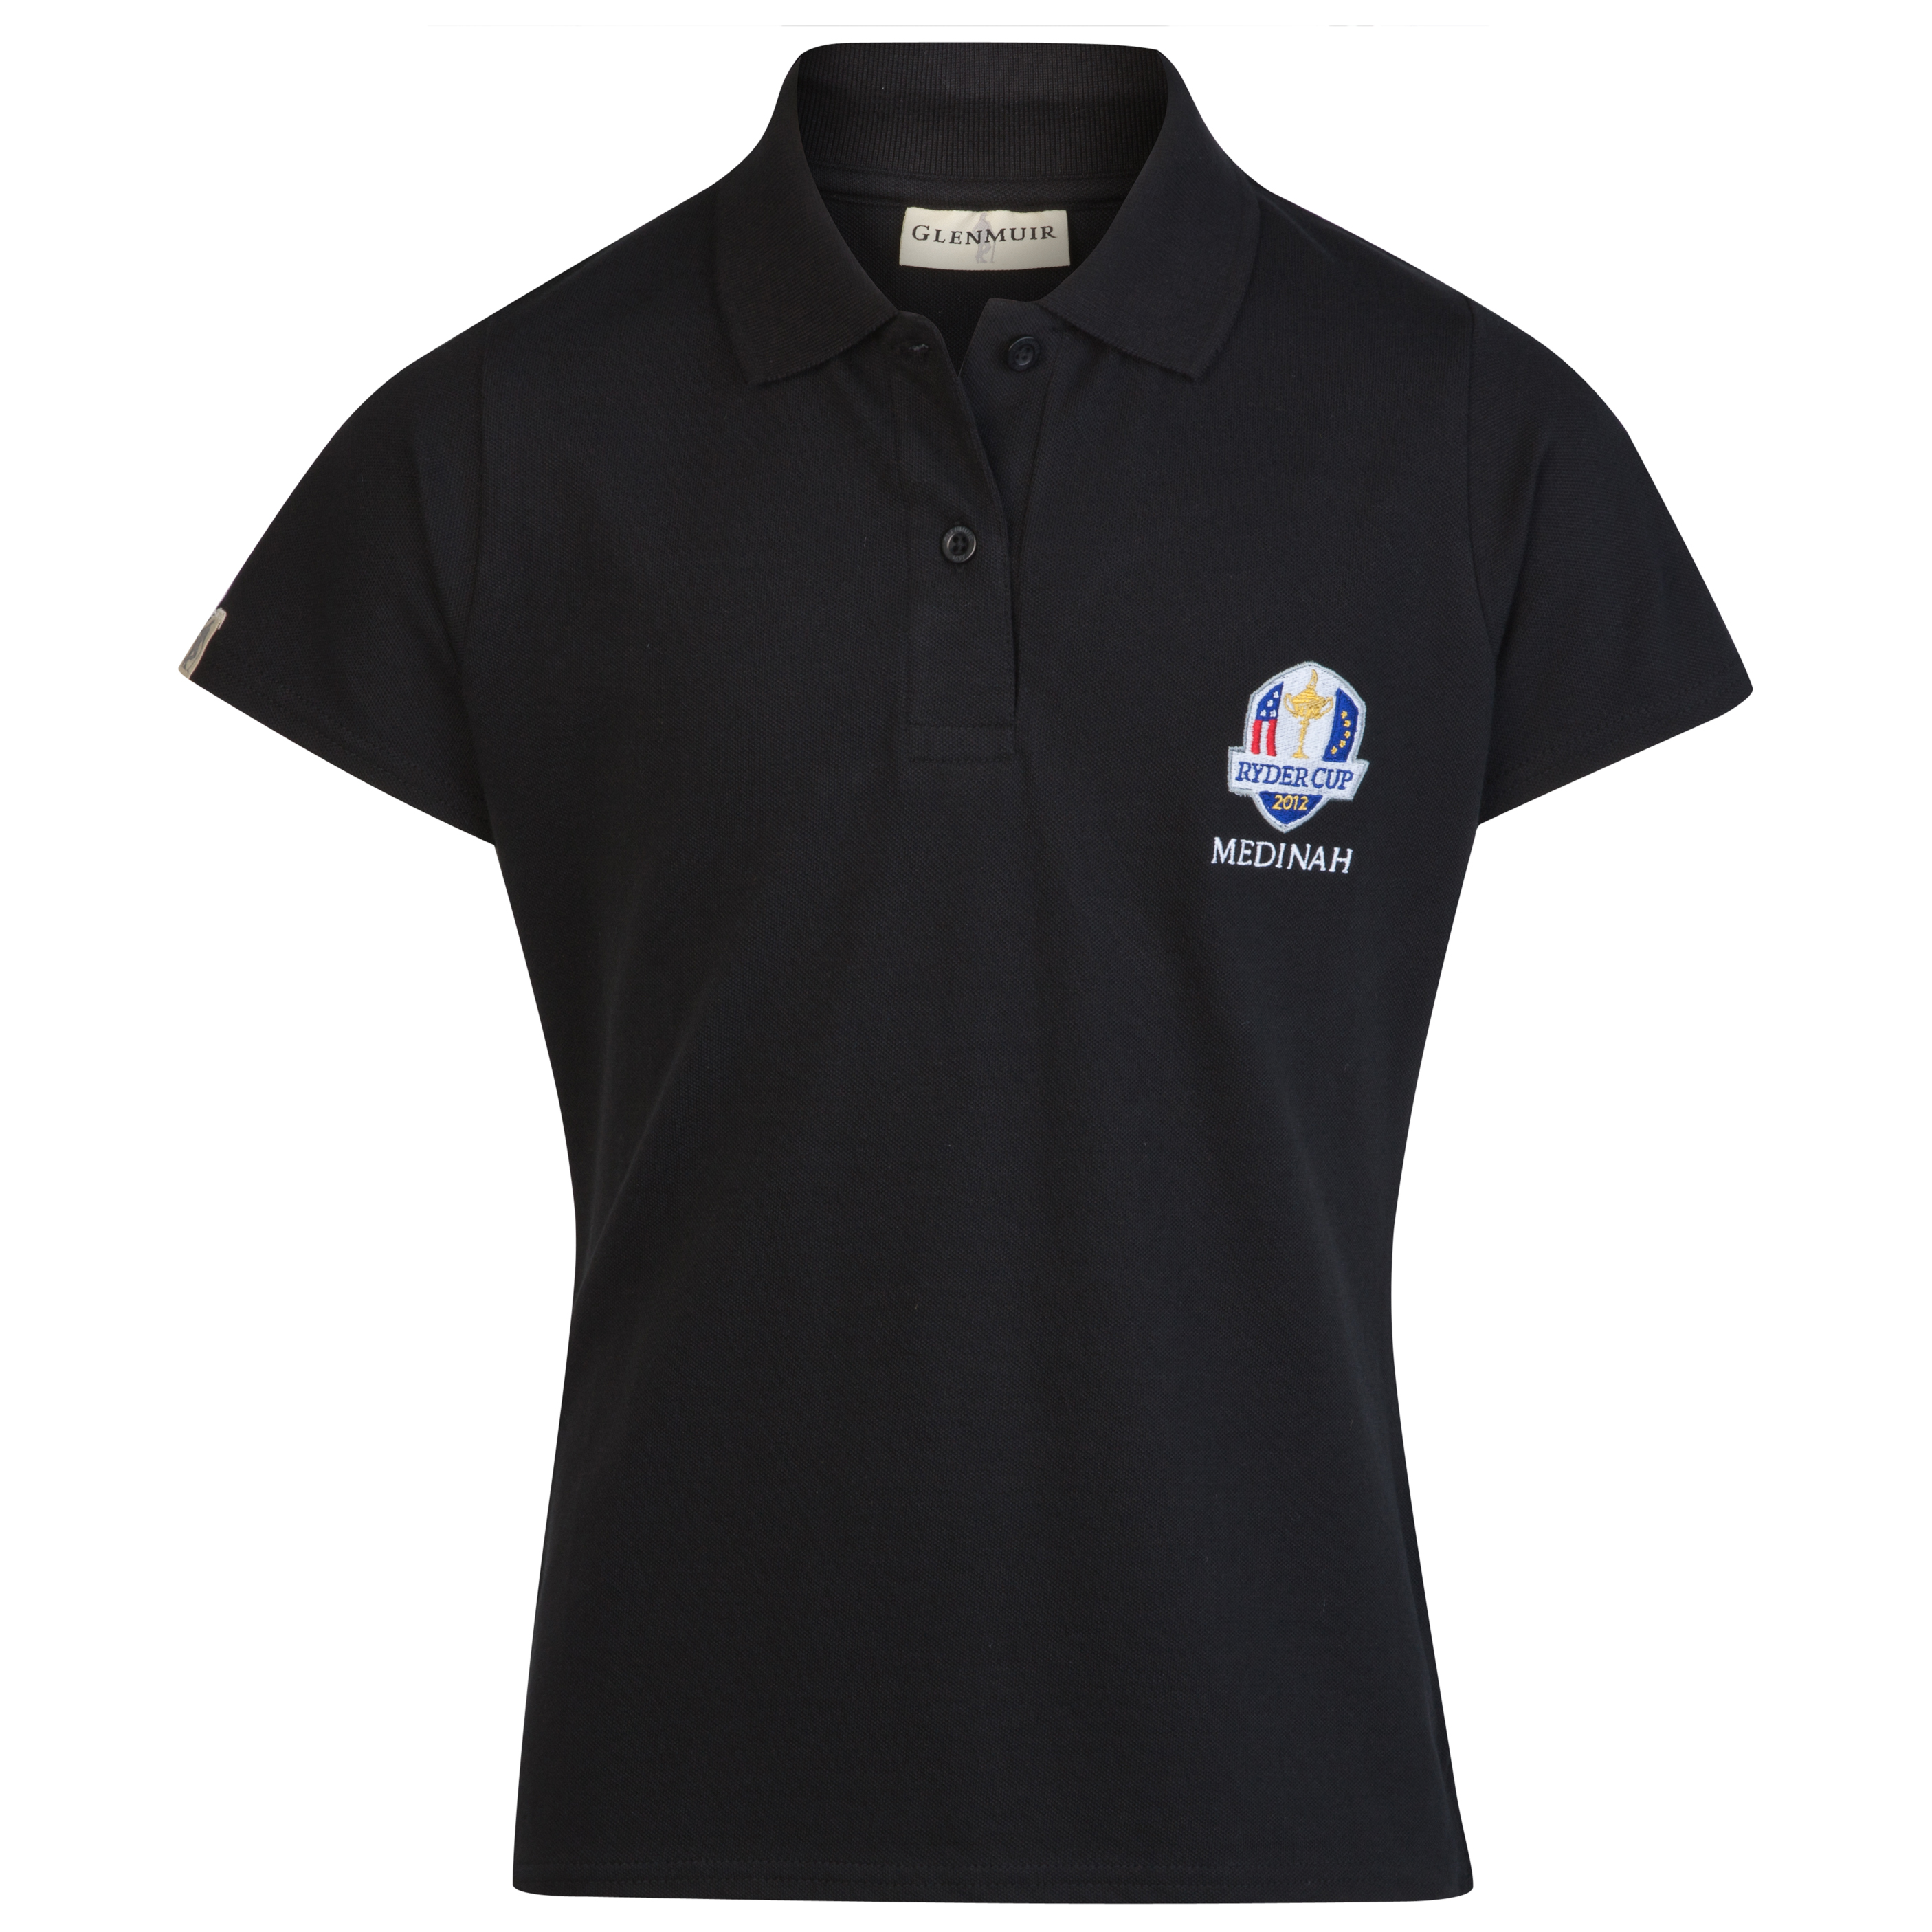 The Ryder Cup Medinah 2012 Glenmuir Zara Polo - Black - Girls